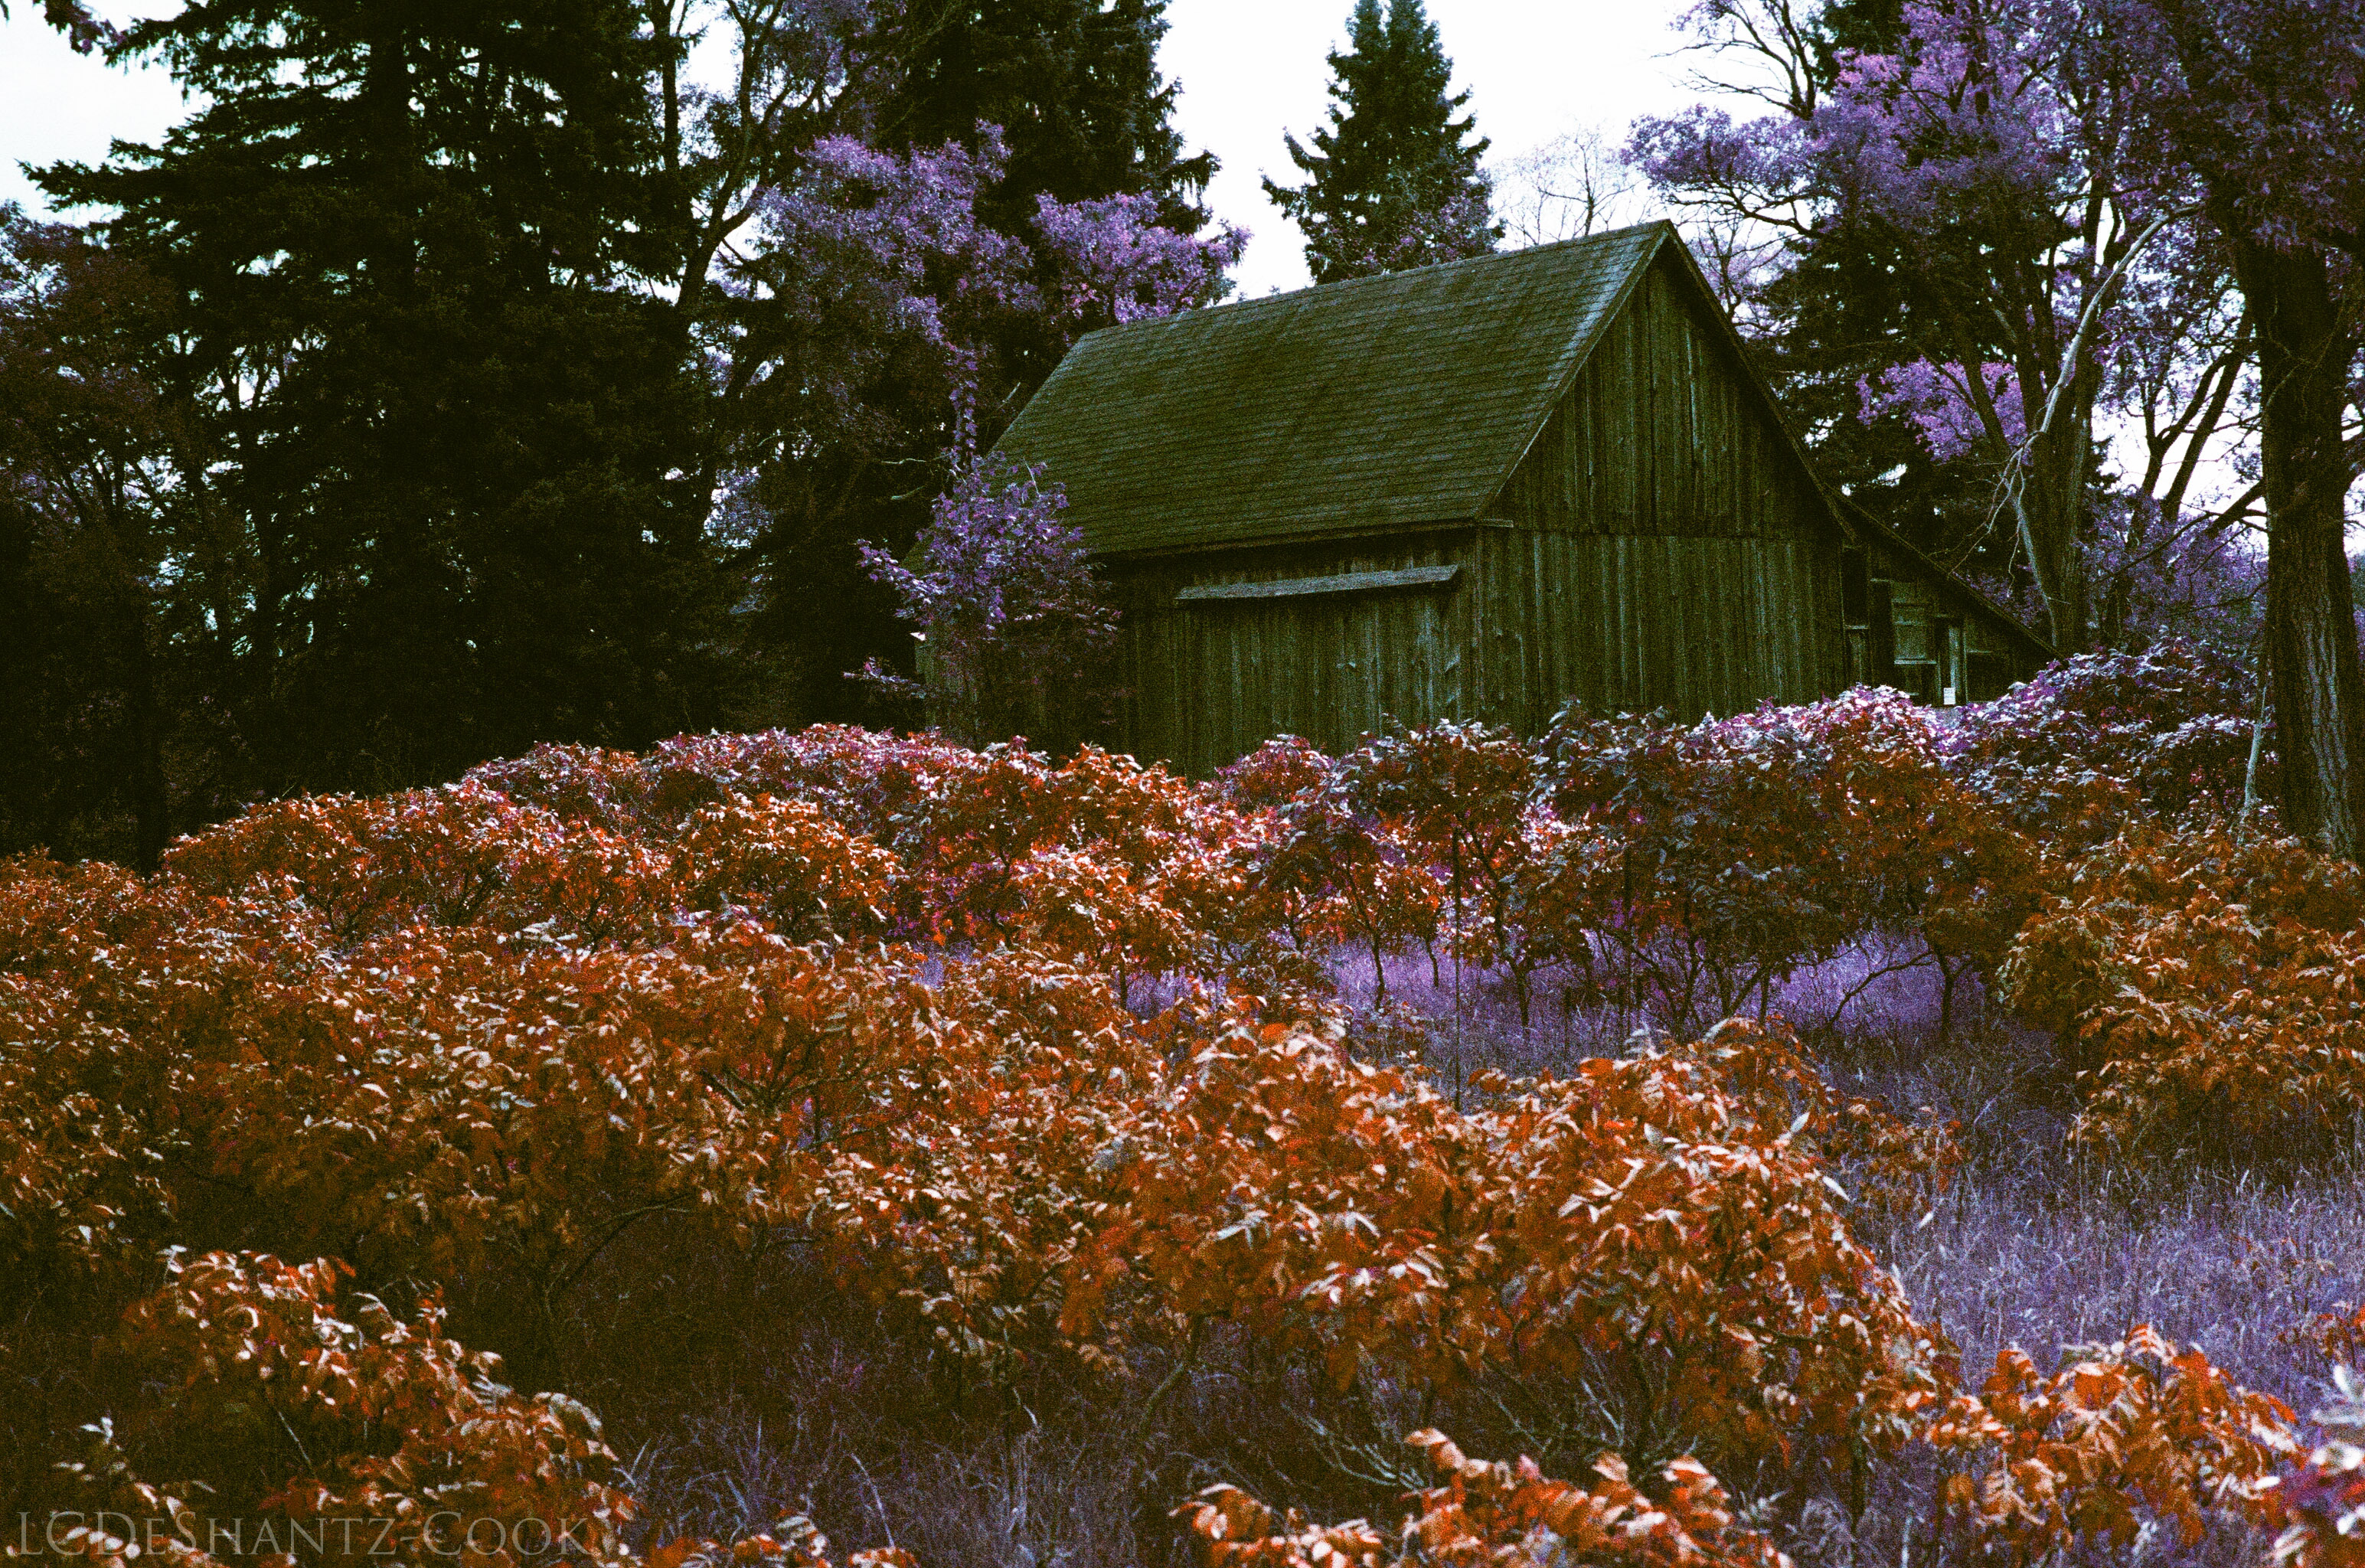 ldc_20161026_77800029srt102_lomo_purple_200